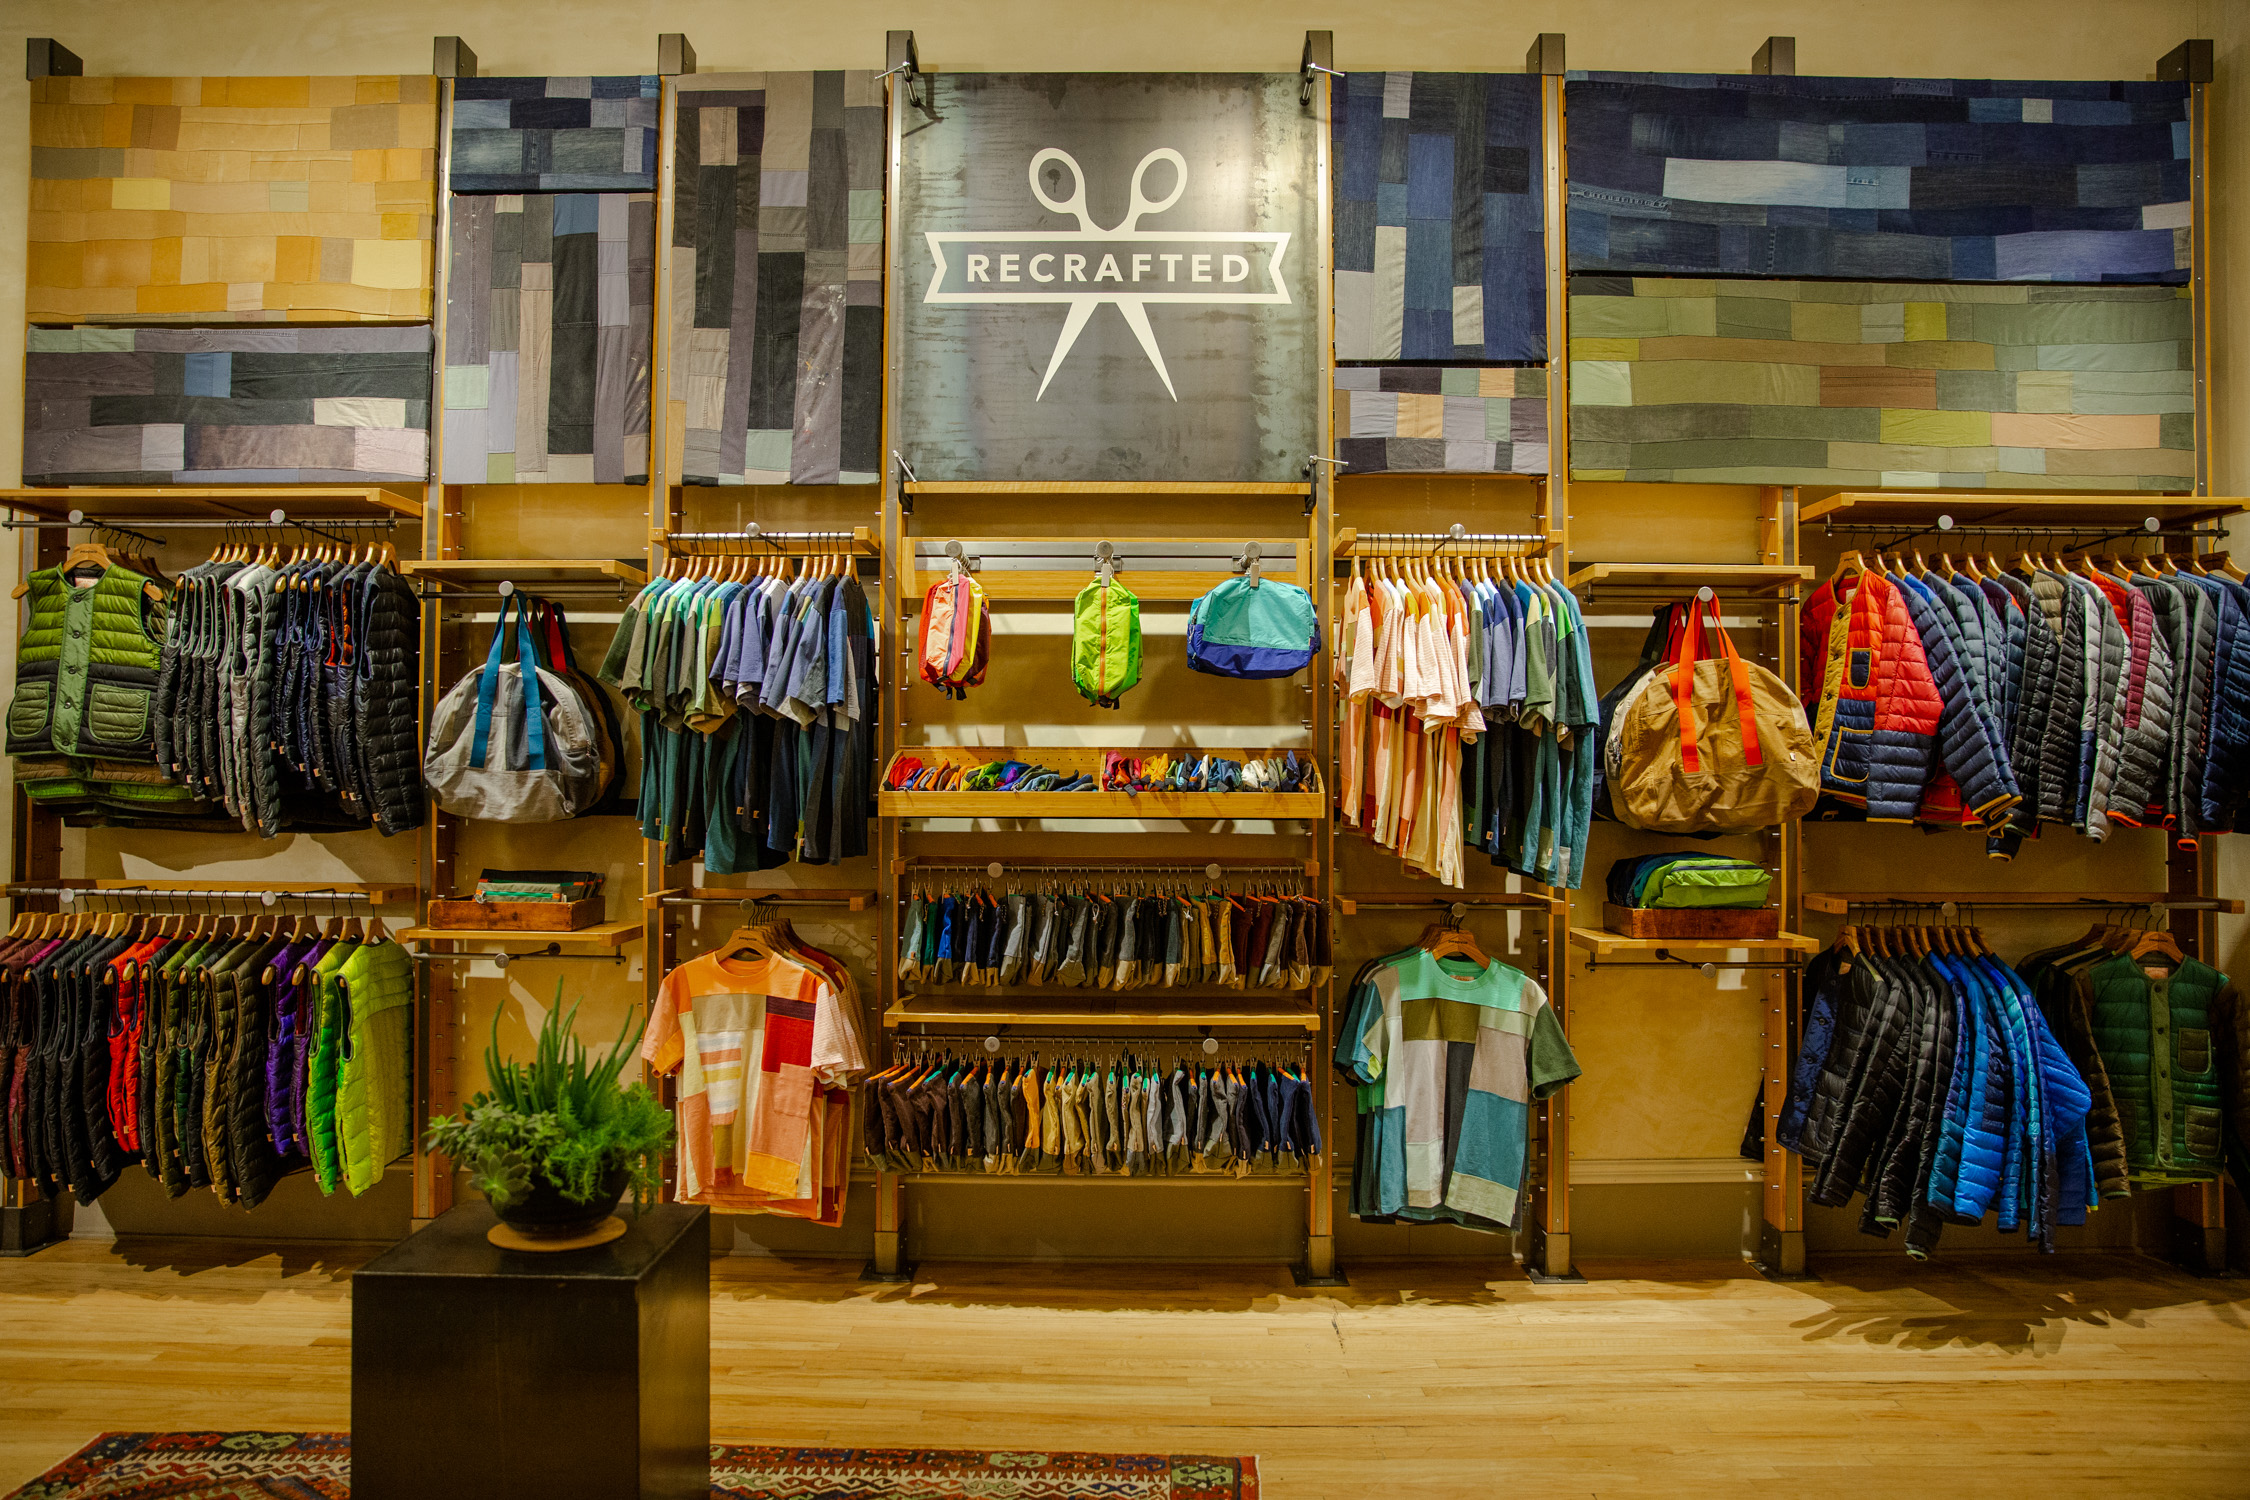 A wall with different Worn Wear items on hangers in Patagonia store